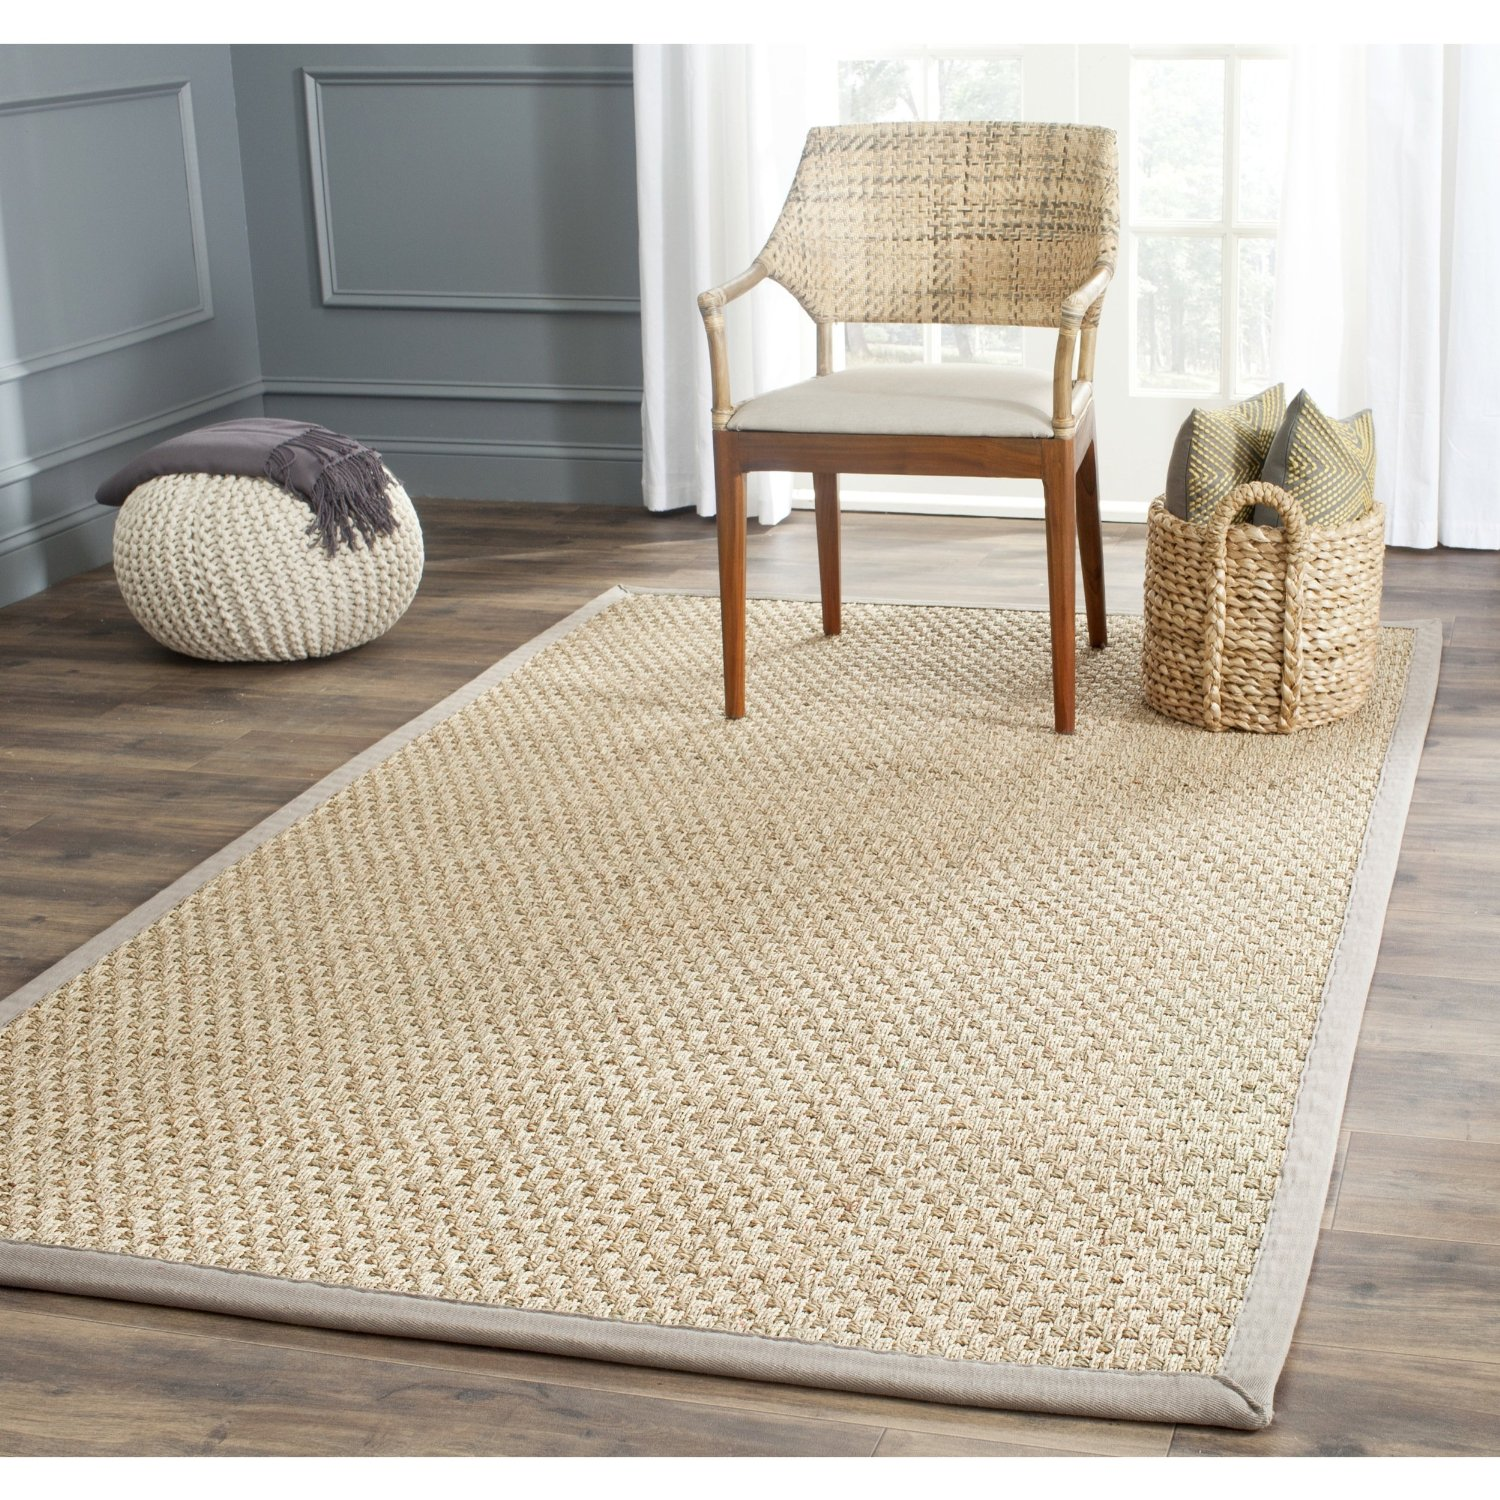 Works Best In. Non Toxic Area Rugs For Your Home   The Best Organic Lifestyle